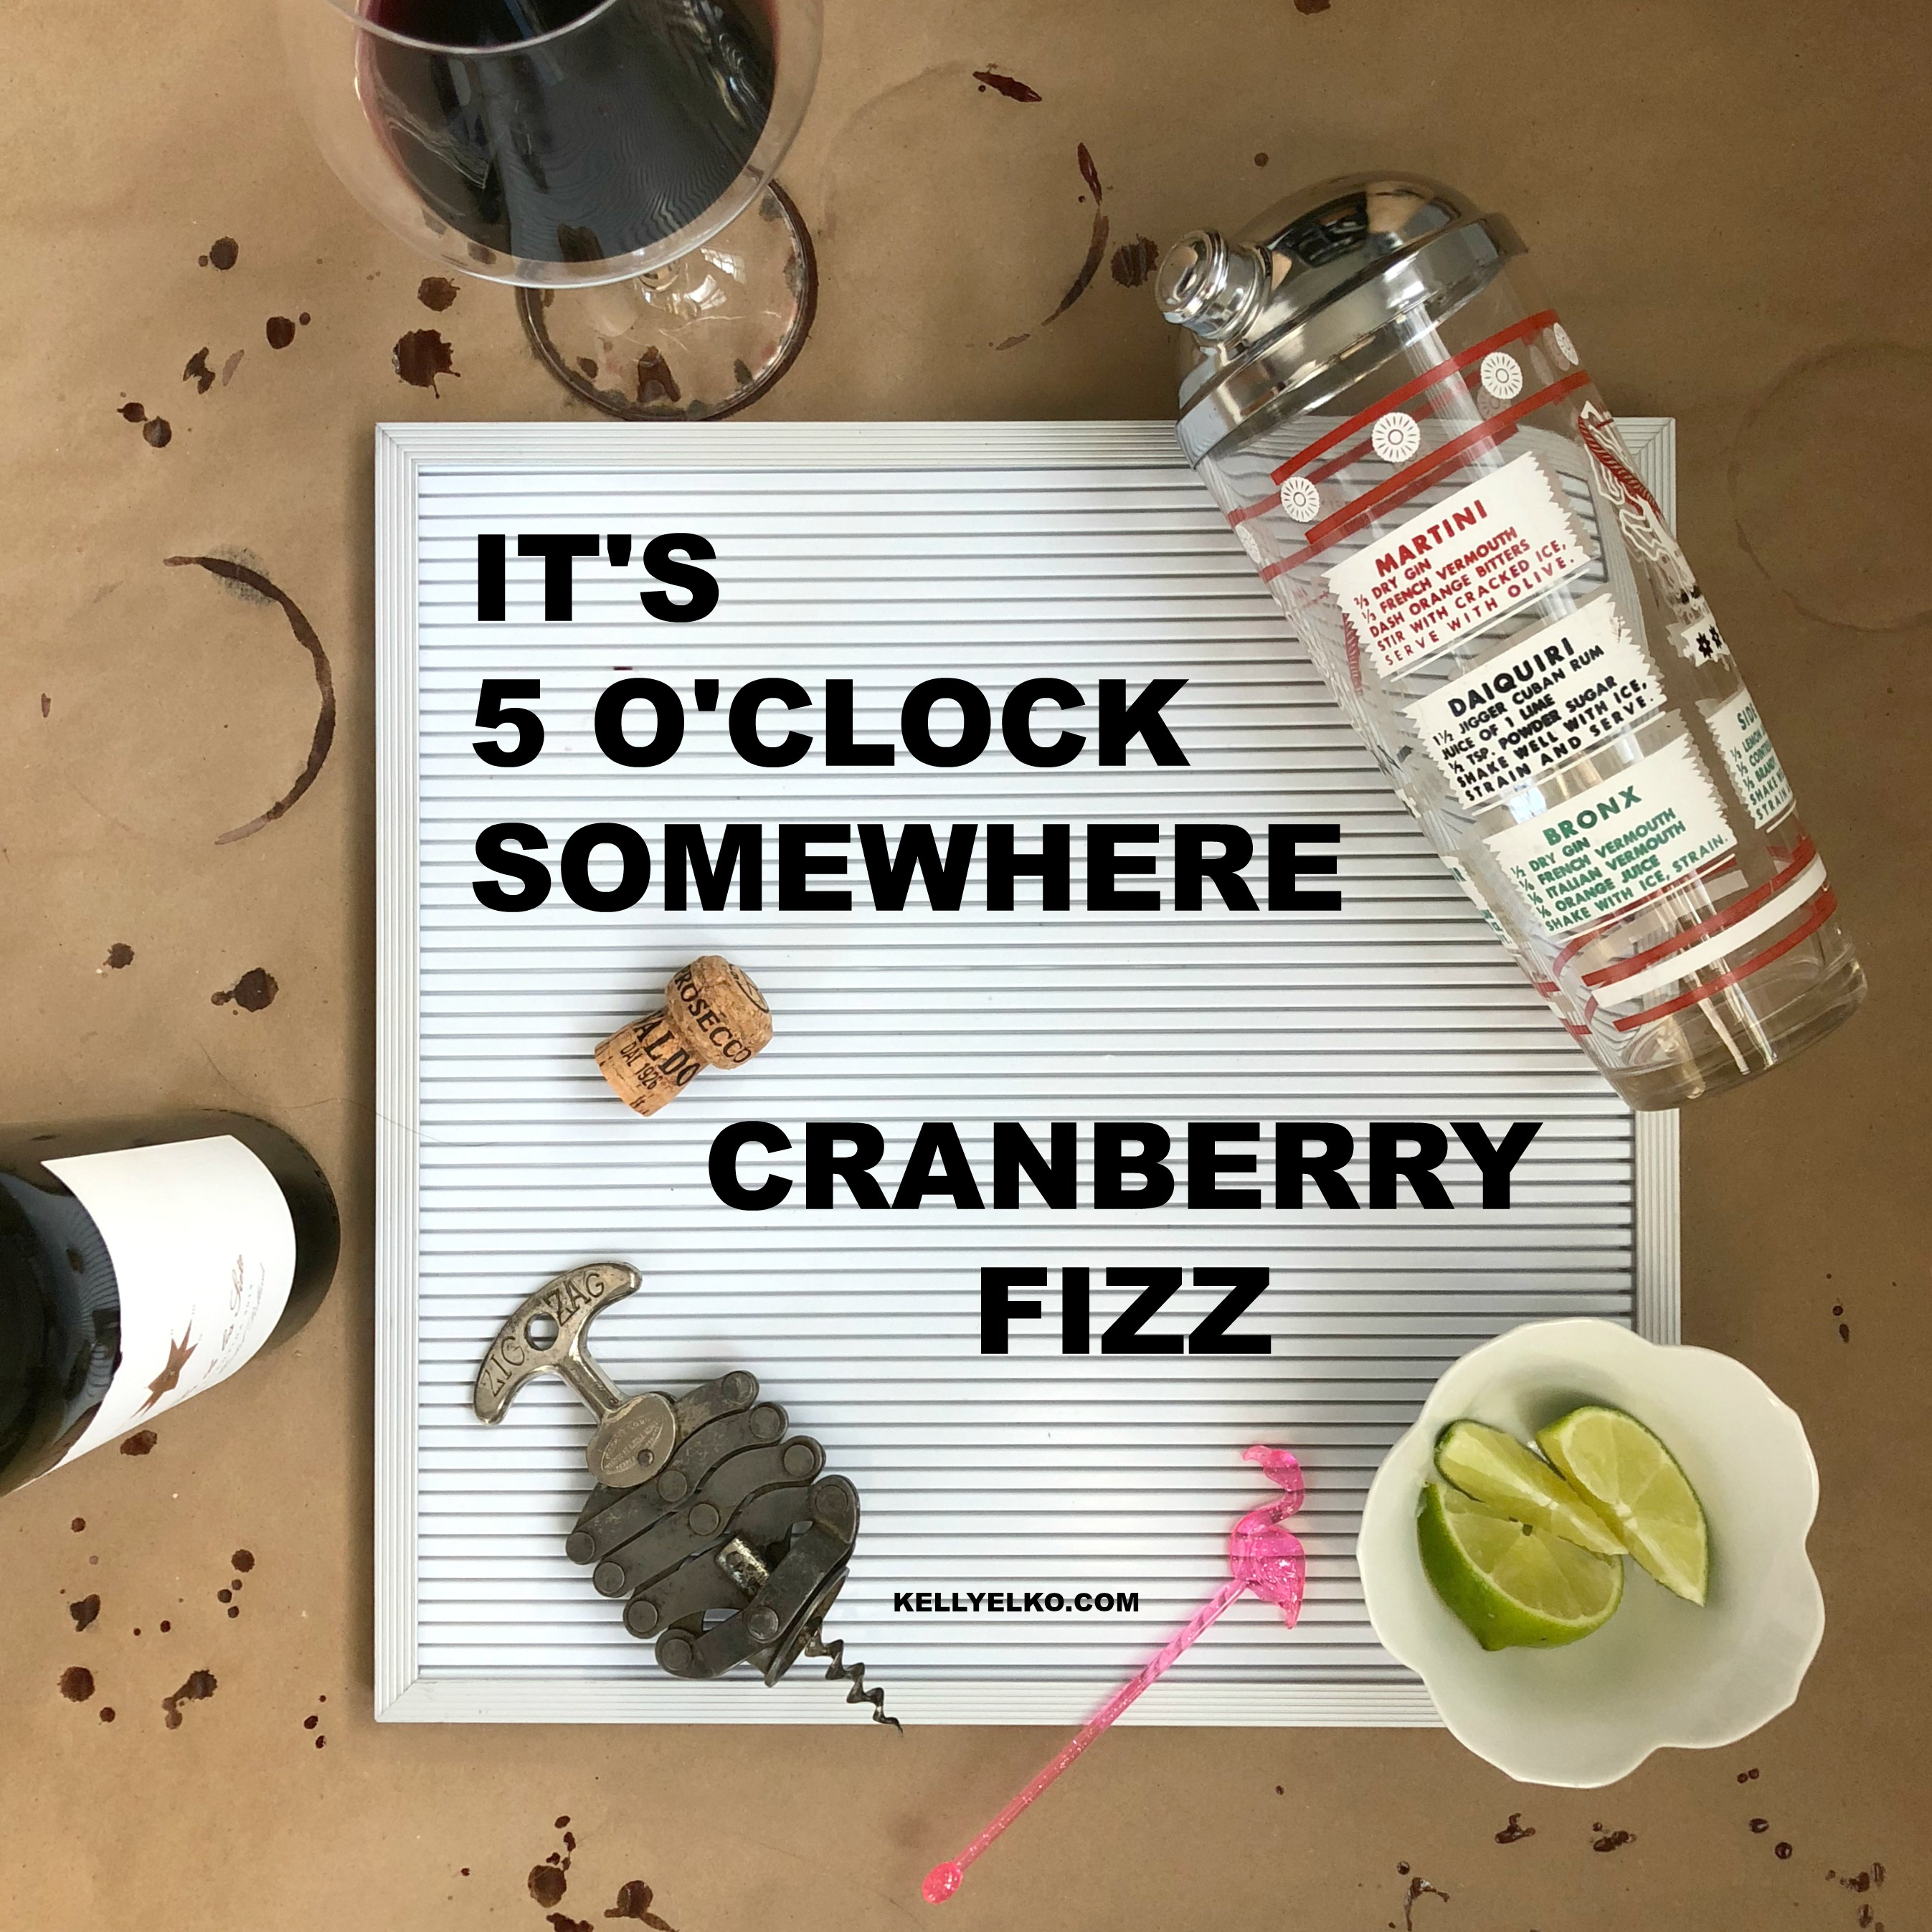 It's 5 O'Clock Somewhere - amazing cocktail recipes! kellyelko.com #cocktails #cheers #cocktailrecipes #5oclocksomewhere